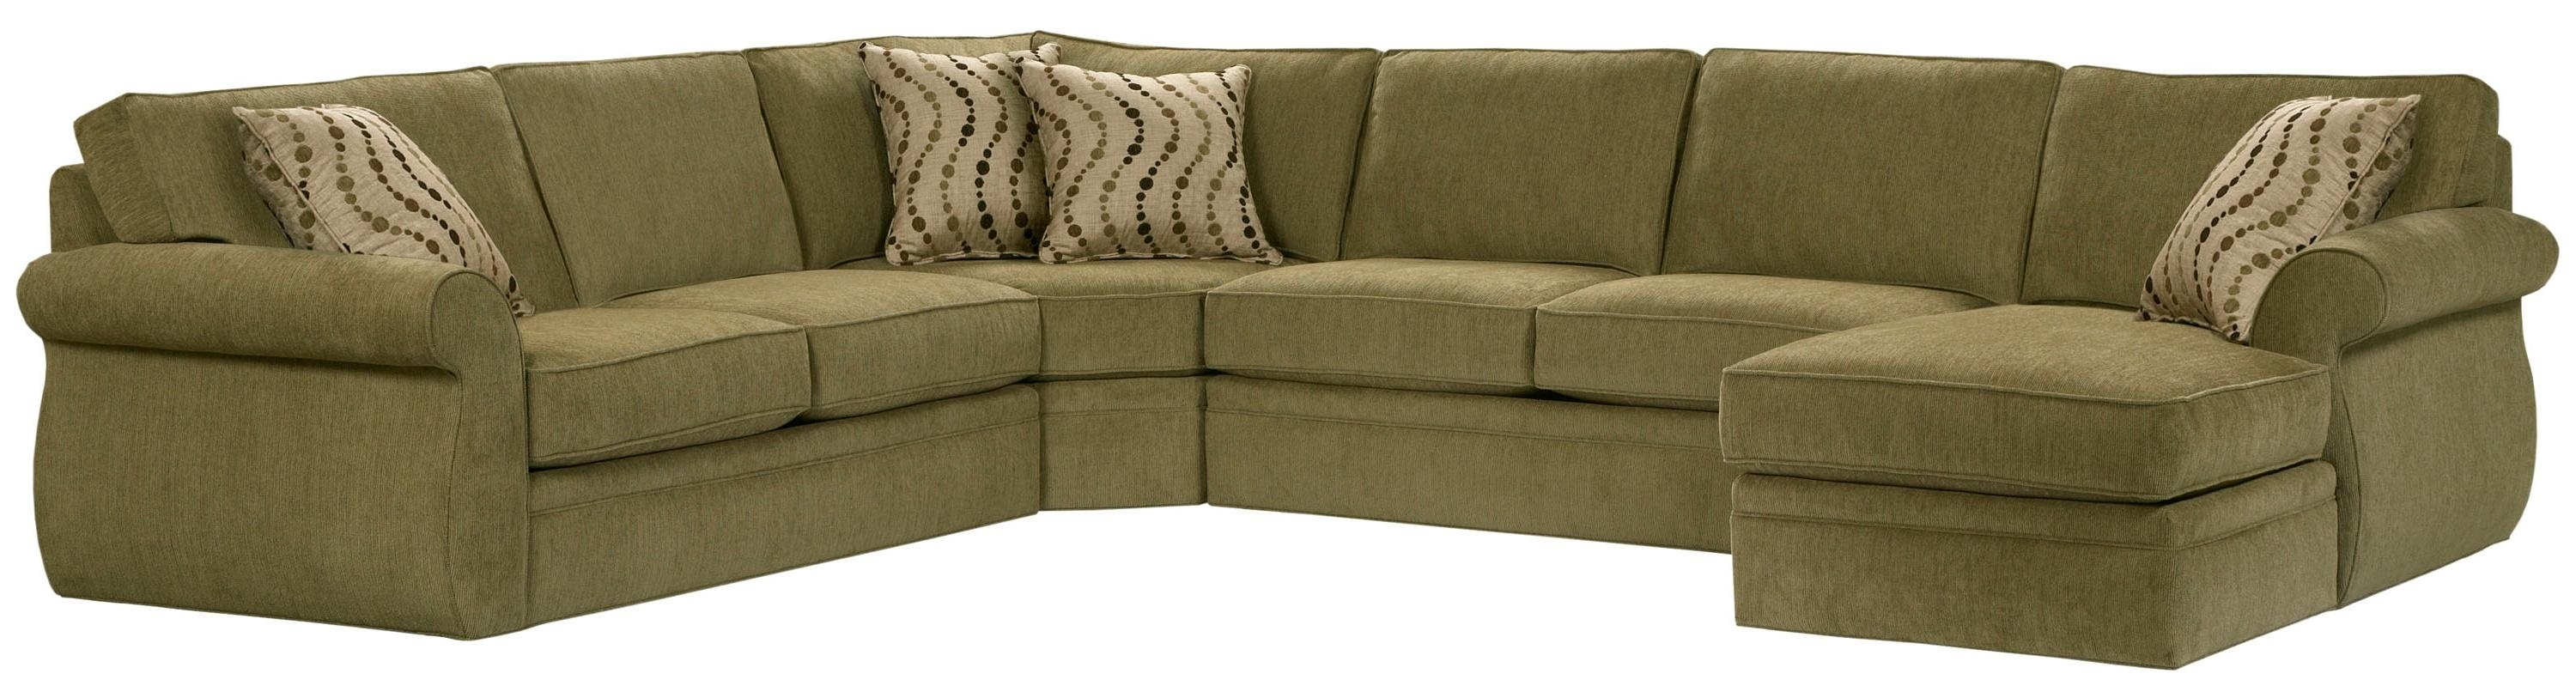 Broyhill Furniture Veronica Right Arm Facing Customizable Chaise Throughout Sectional Sofas At Broyhill (View 5 of 15)